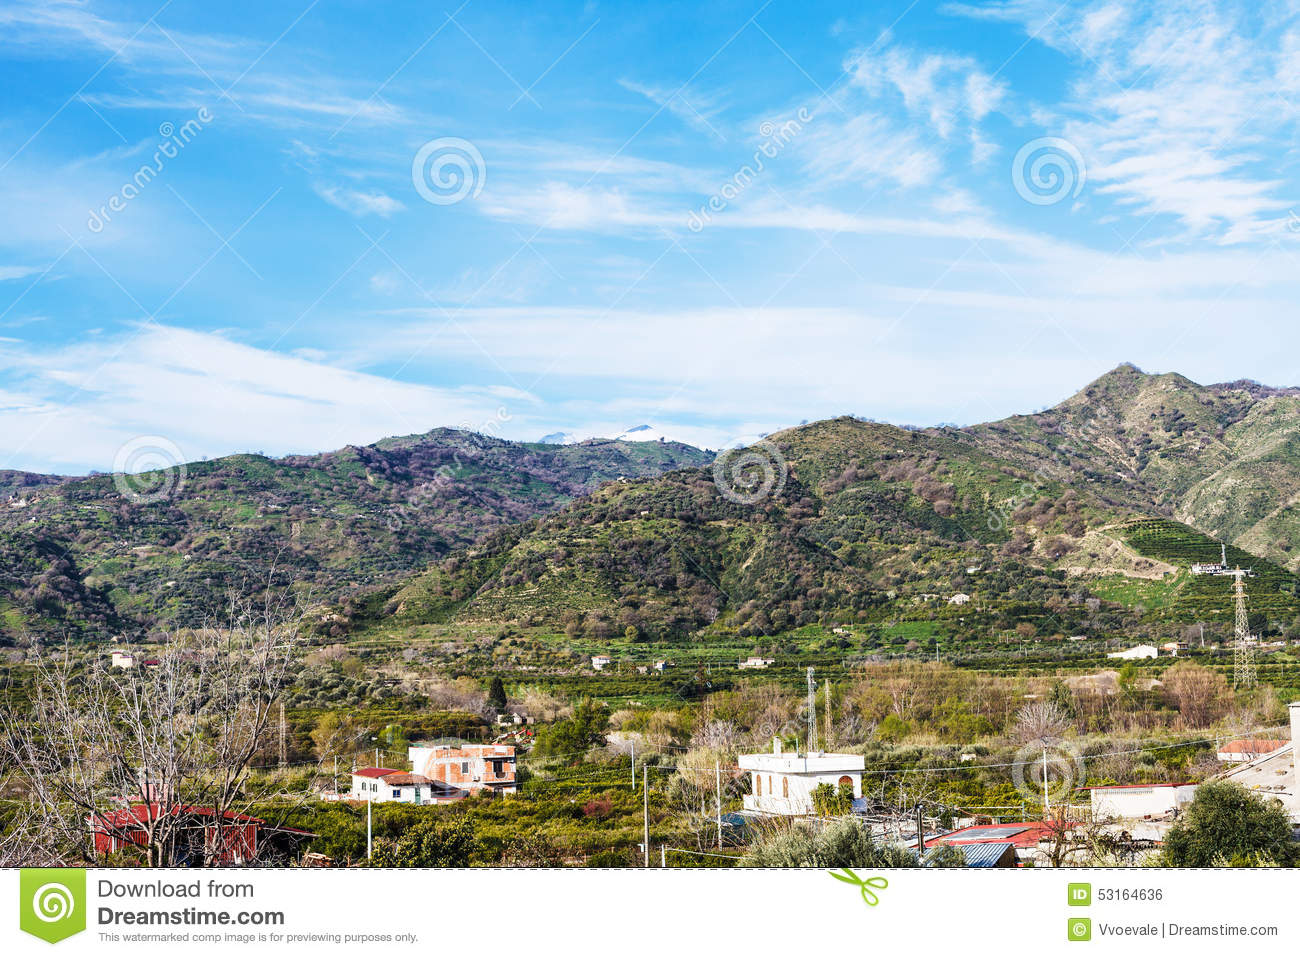 Suburb of town gaggi in green hills sicily italy stock for Green italy